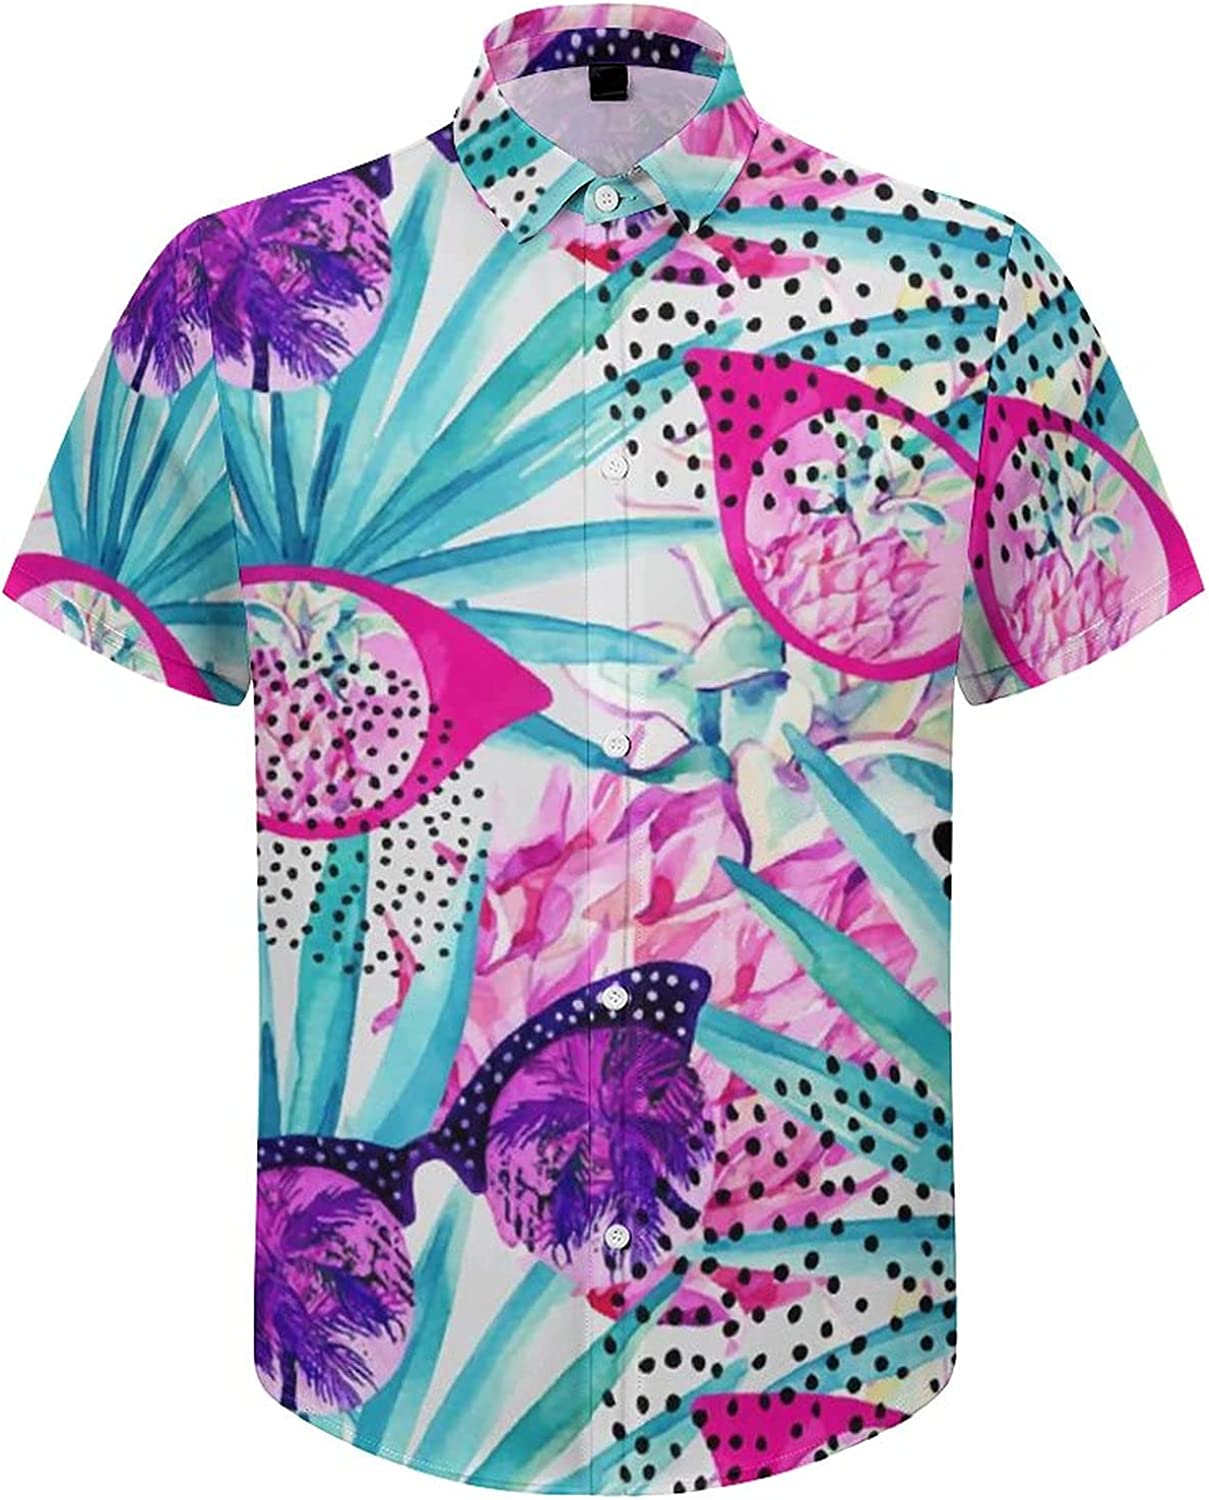 Men's Short Sleeve Button Down Shirt Sunglasses with Tropical Tree Summer Shirts